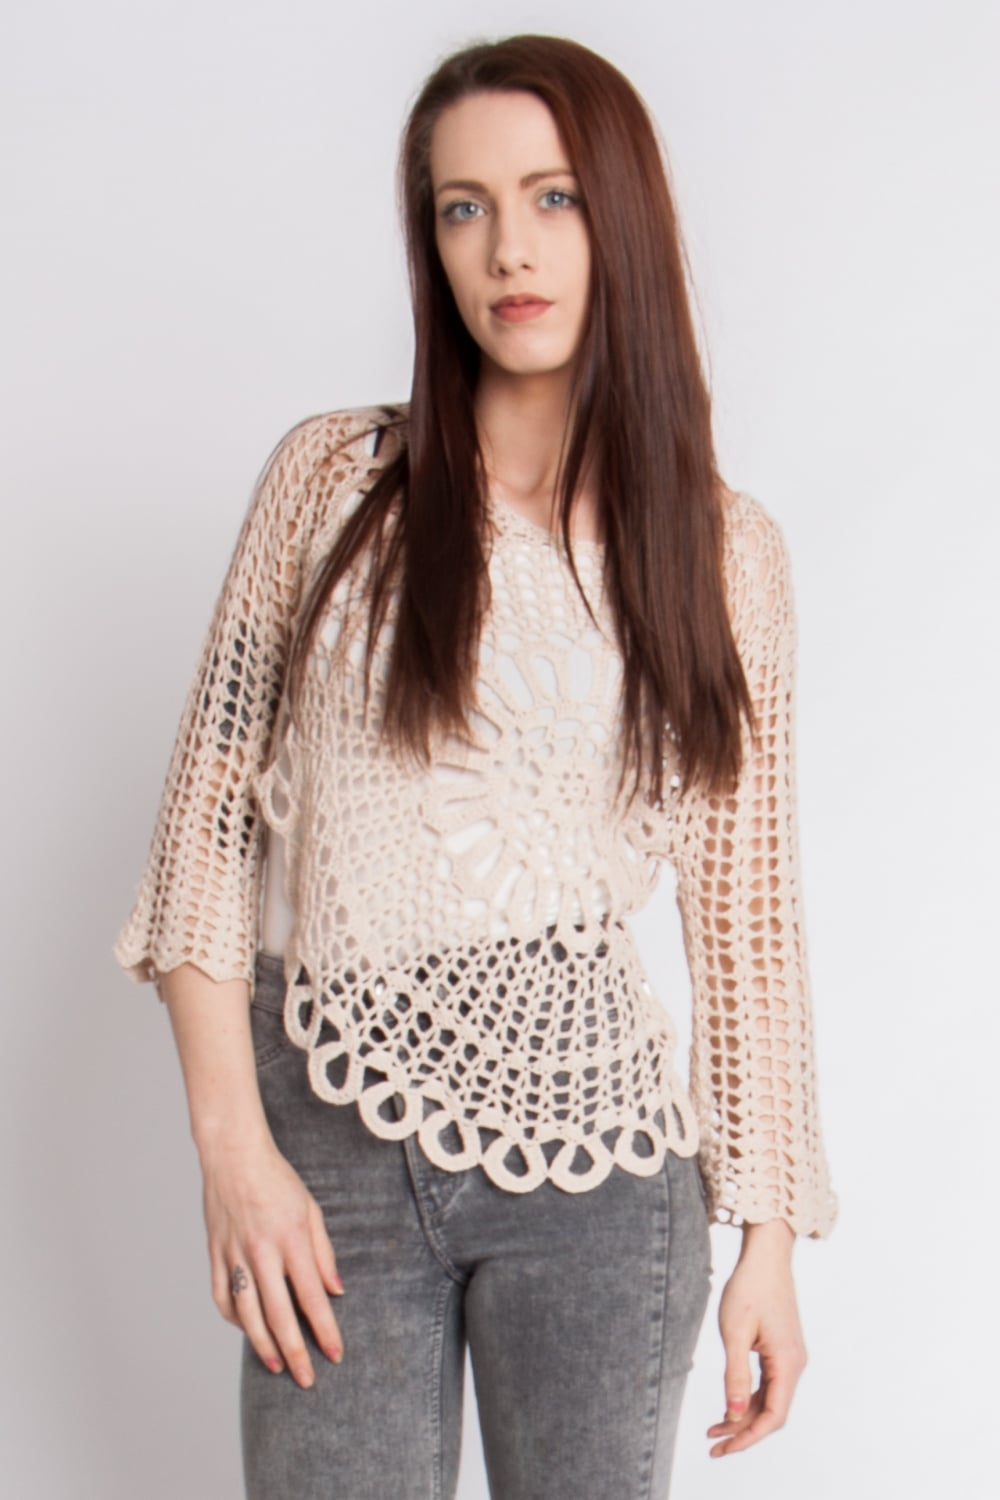 Cream Crochet Knitted Long Sleeve Top With Floral Pattern